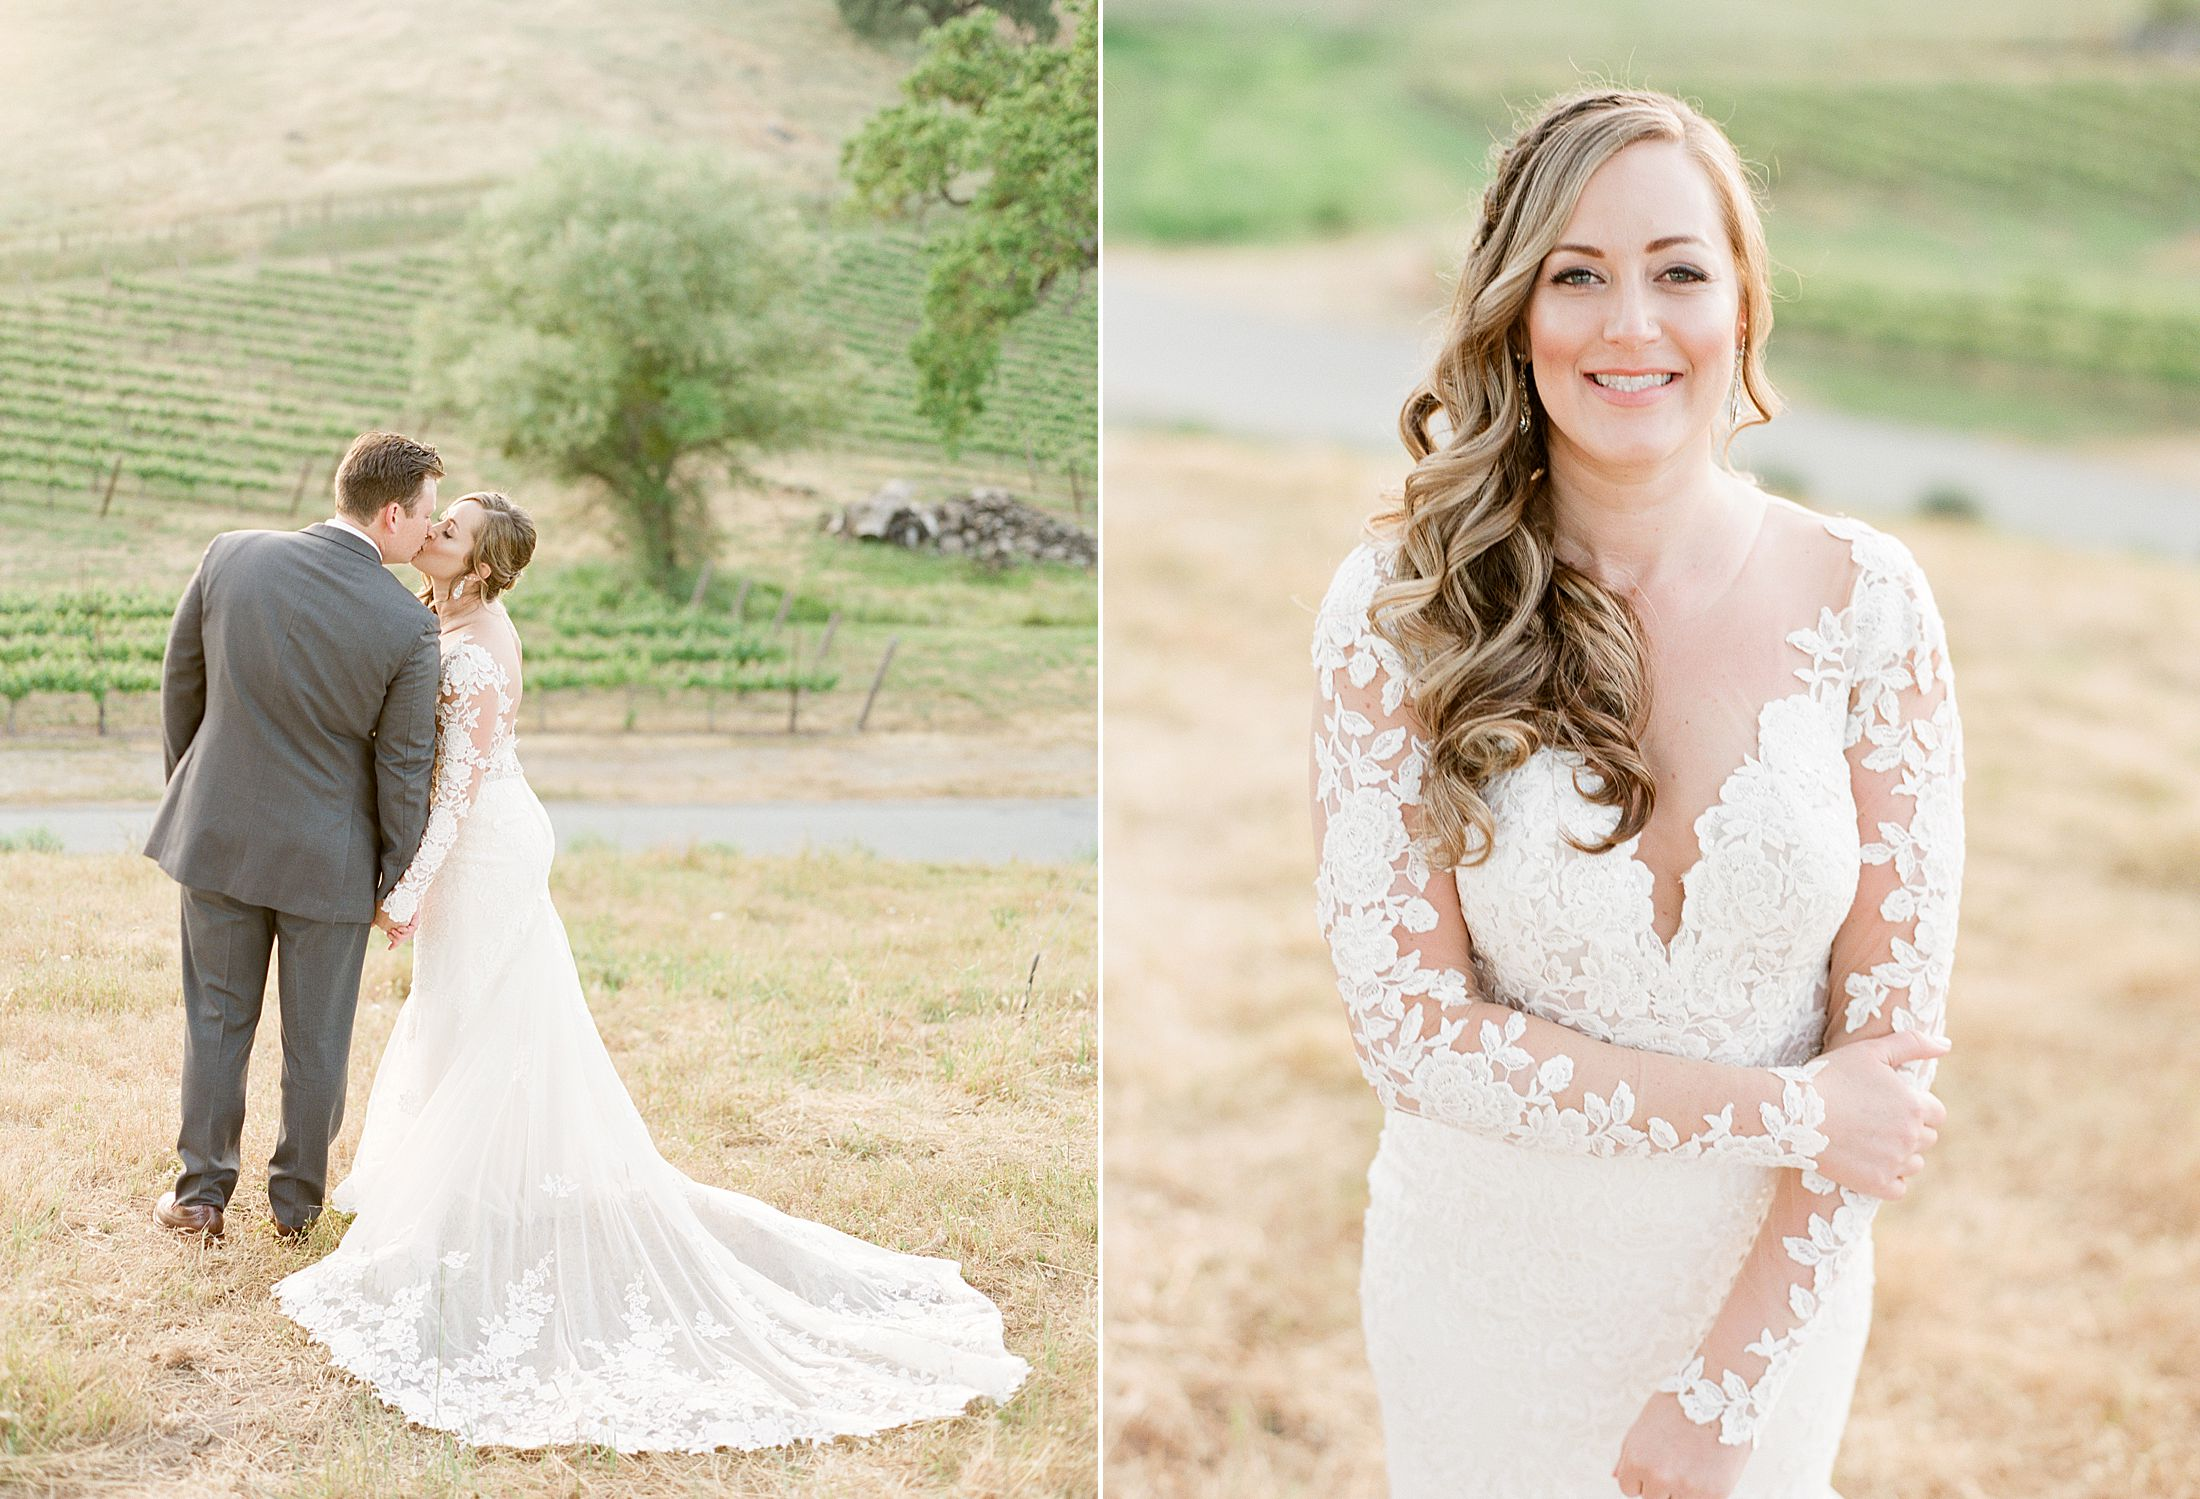 Clos LaChance Winery Wedding - Ashley Baumgartner - Kat & Kurt - Morgan Hill Wedding - Winery Wedding - Bay Area Photographer - Sacramento Wedding Photographer_0063.jpg